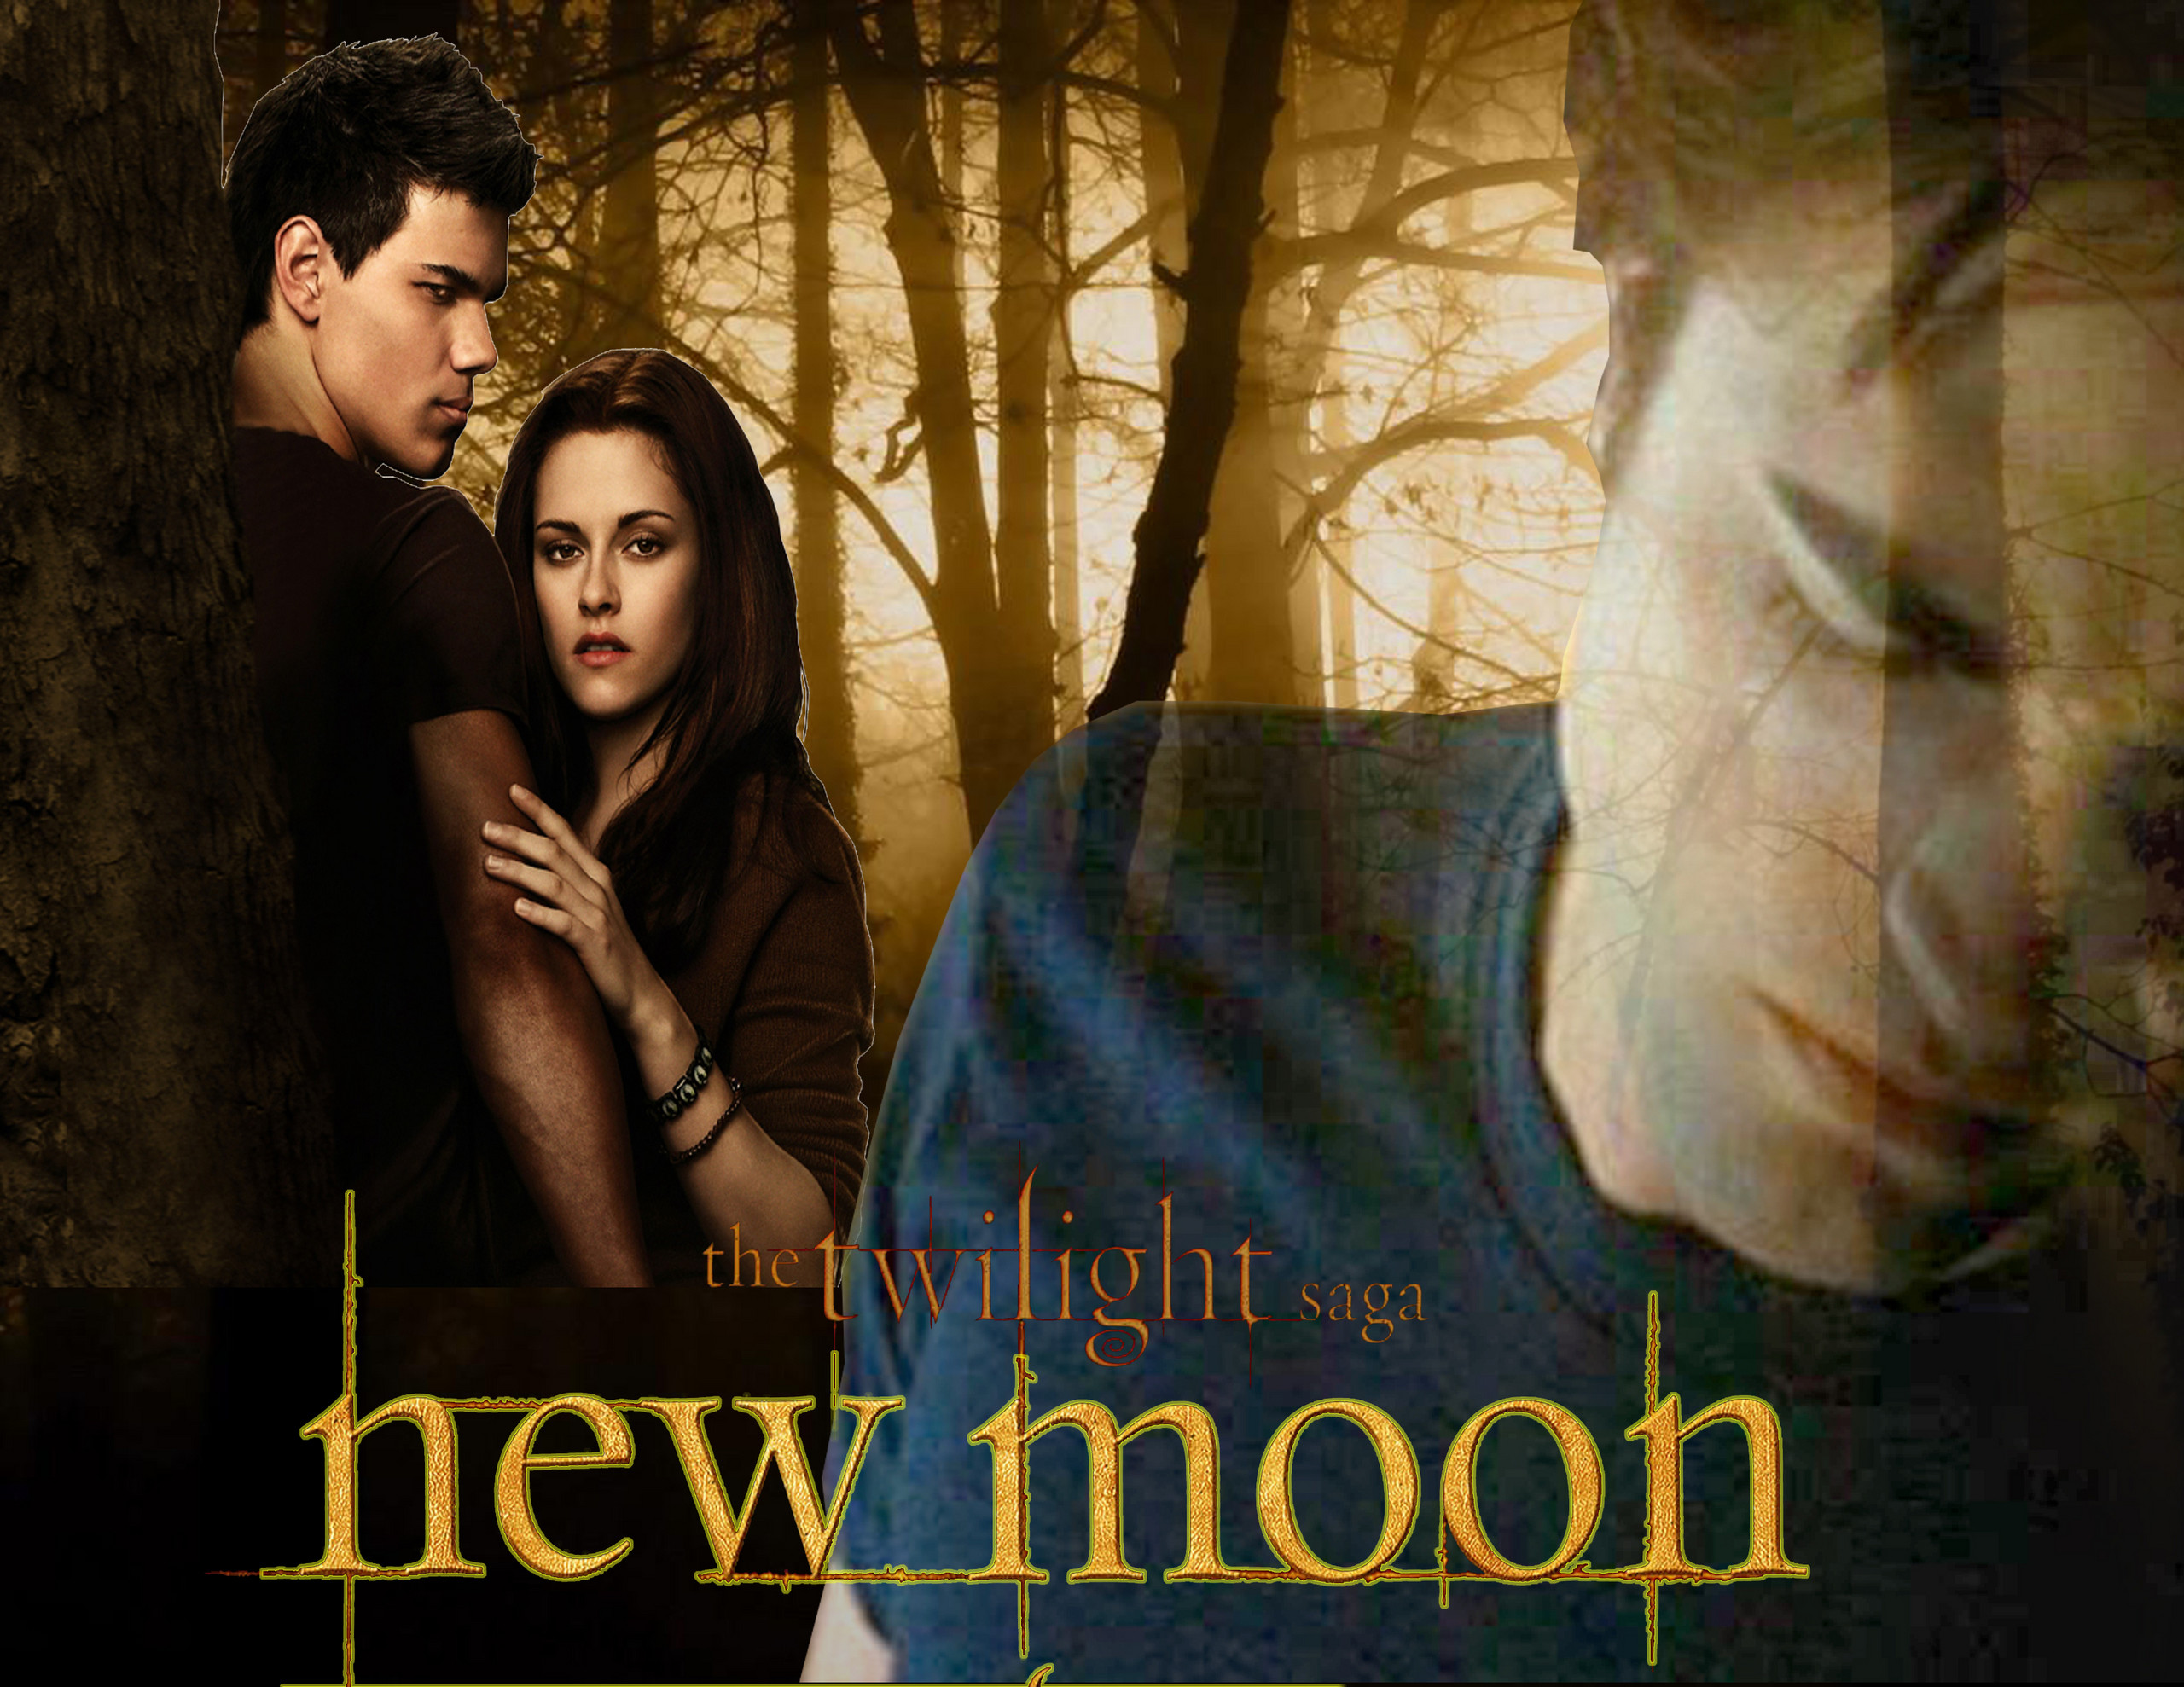 2560x1978 New Moon Movie images Bella Edward wallpaper and background | HD Wallpapers  | Pinterest | Wallpaper